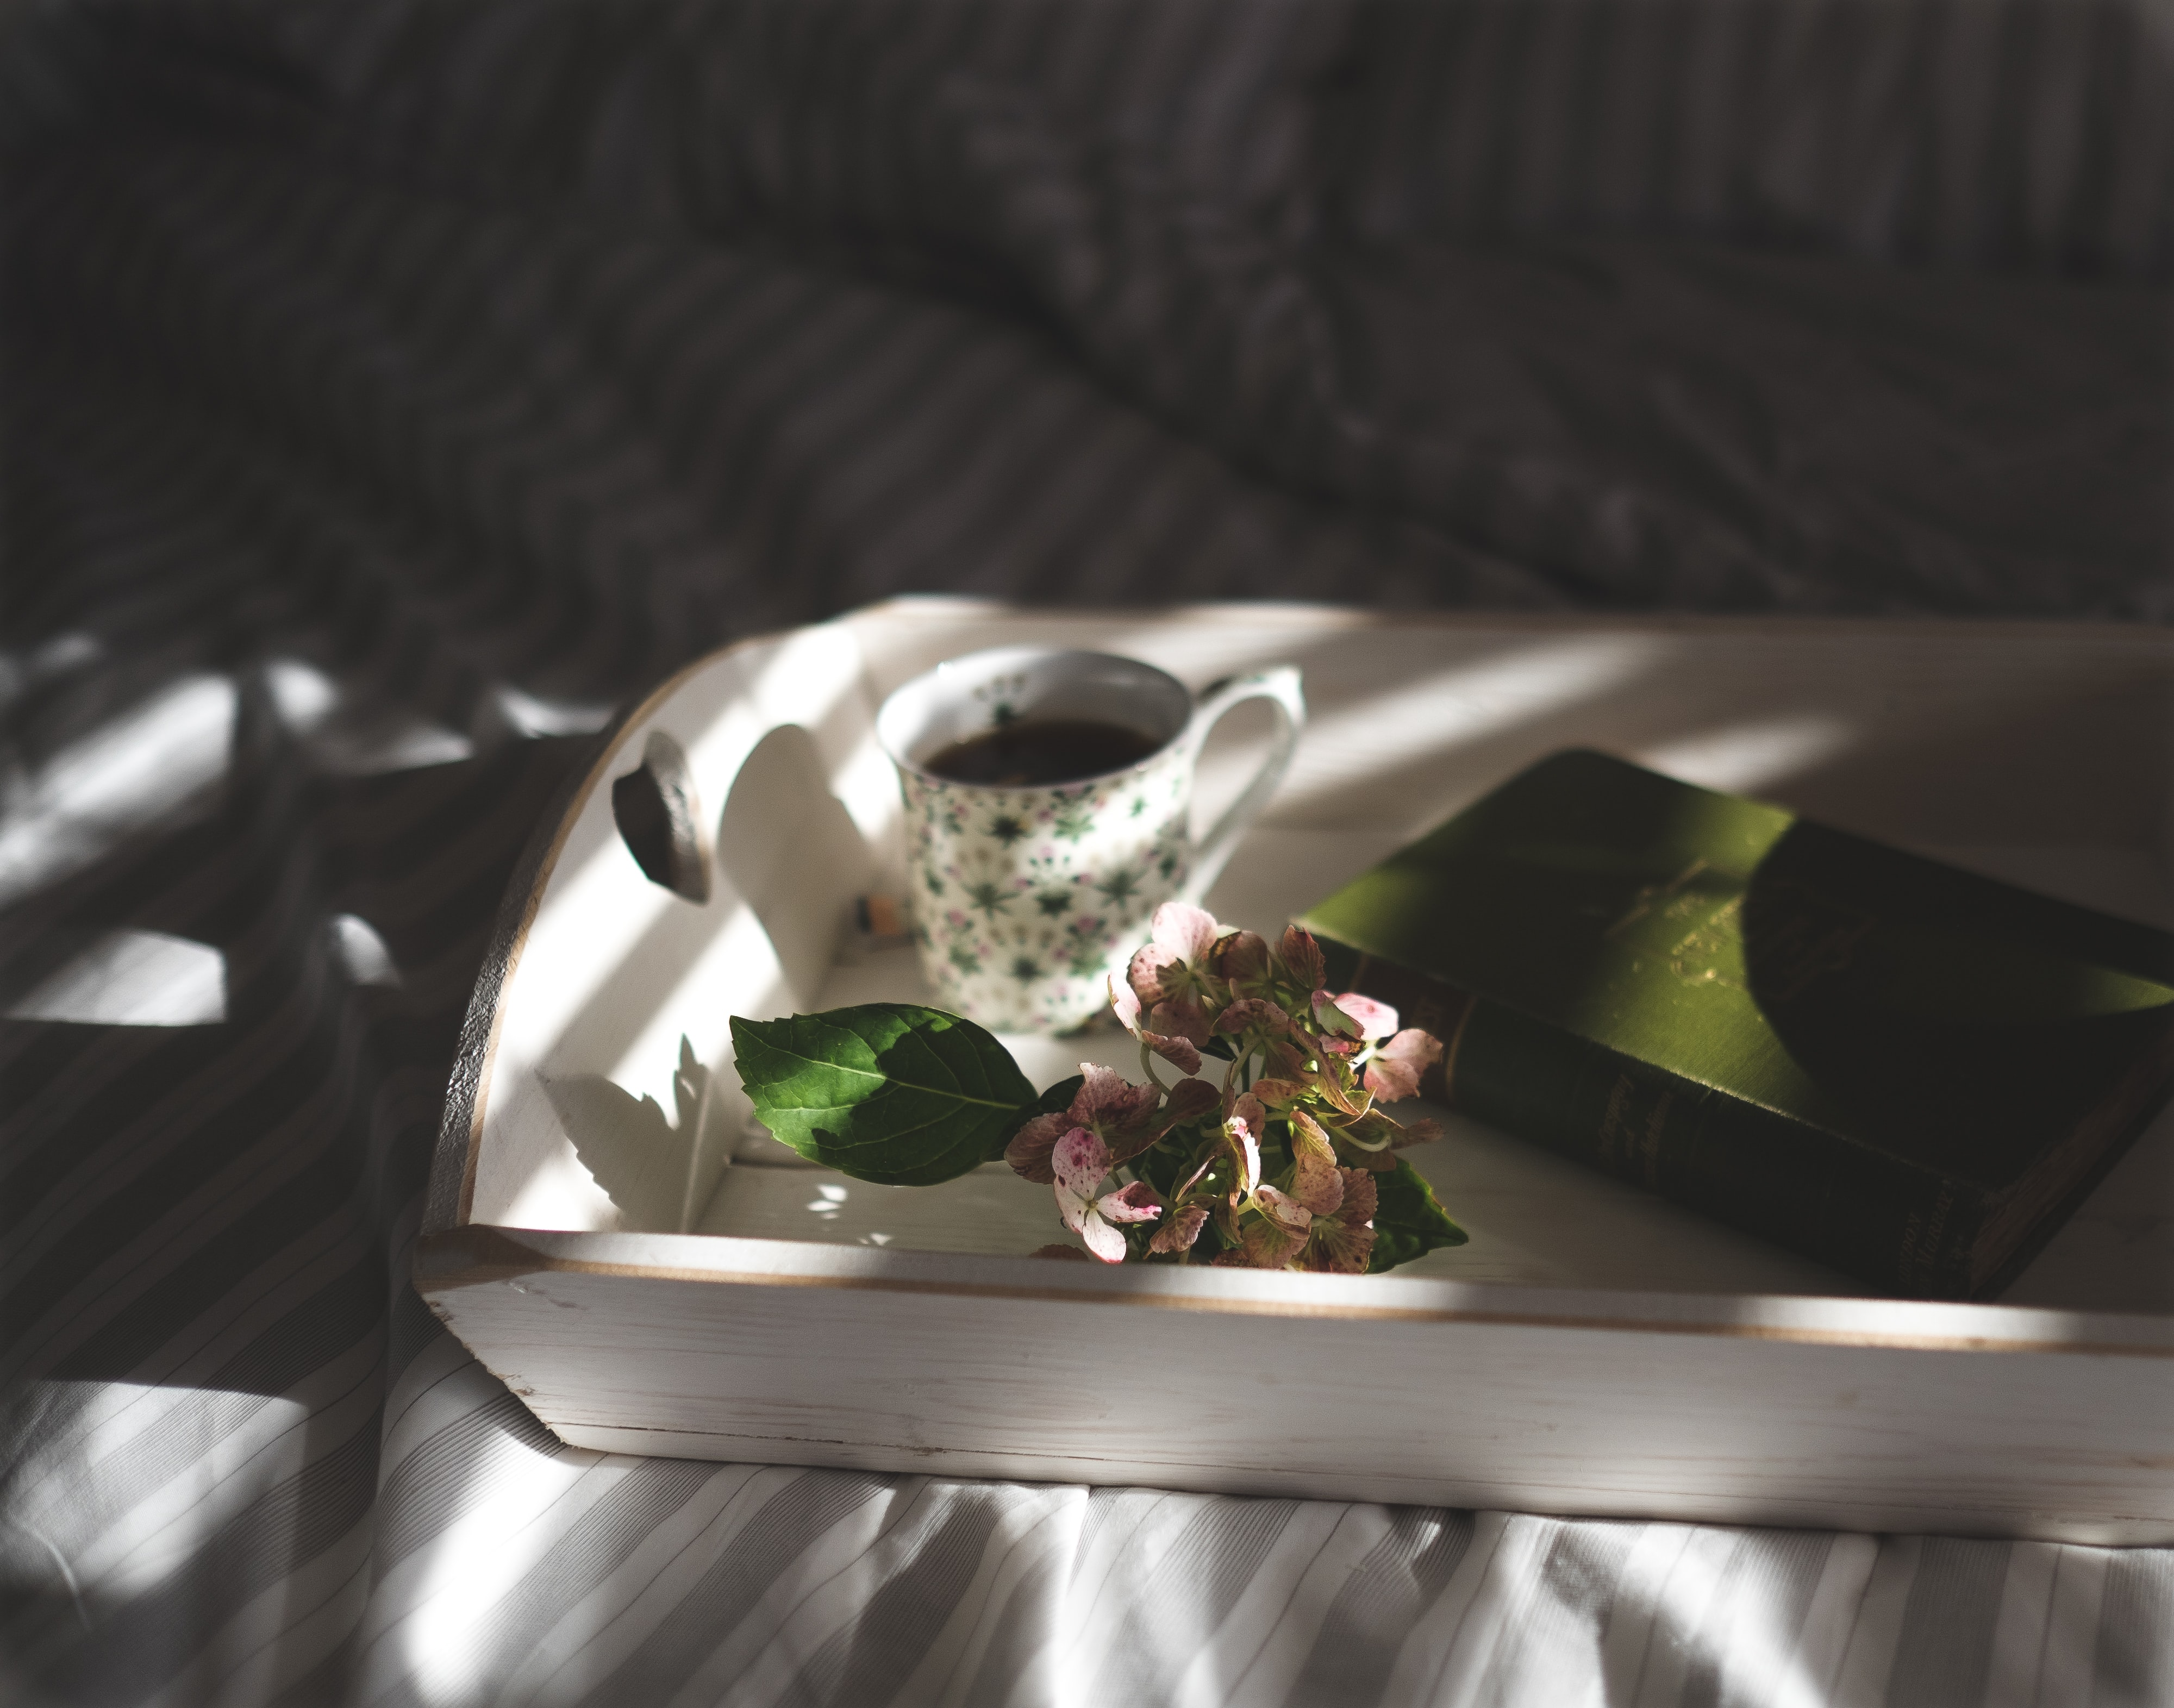 A book, a cup of coffee and a cluster of hydrangea flowers on a wooden tray